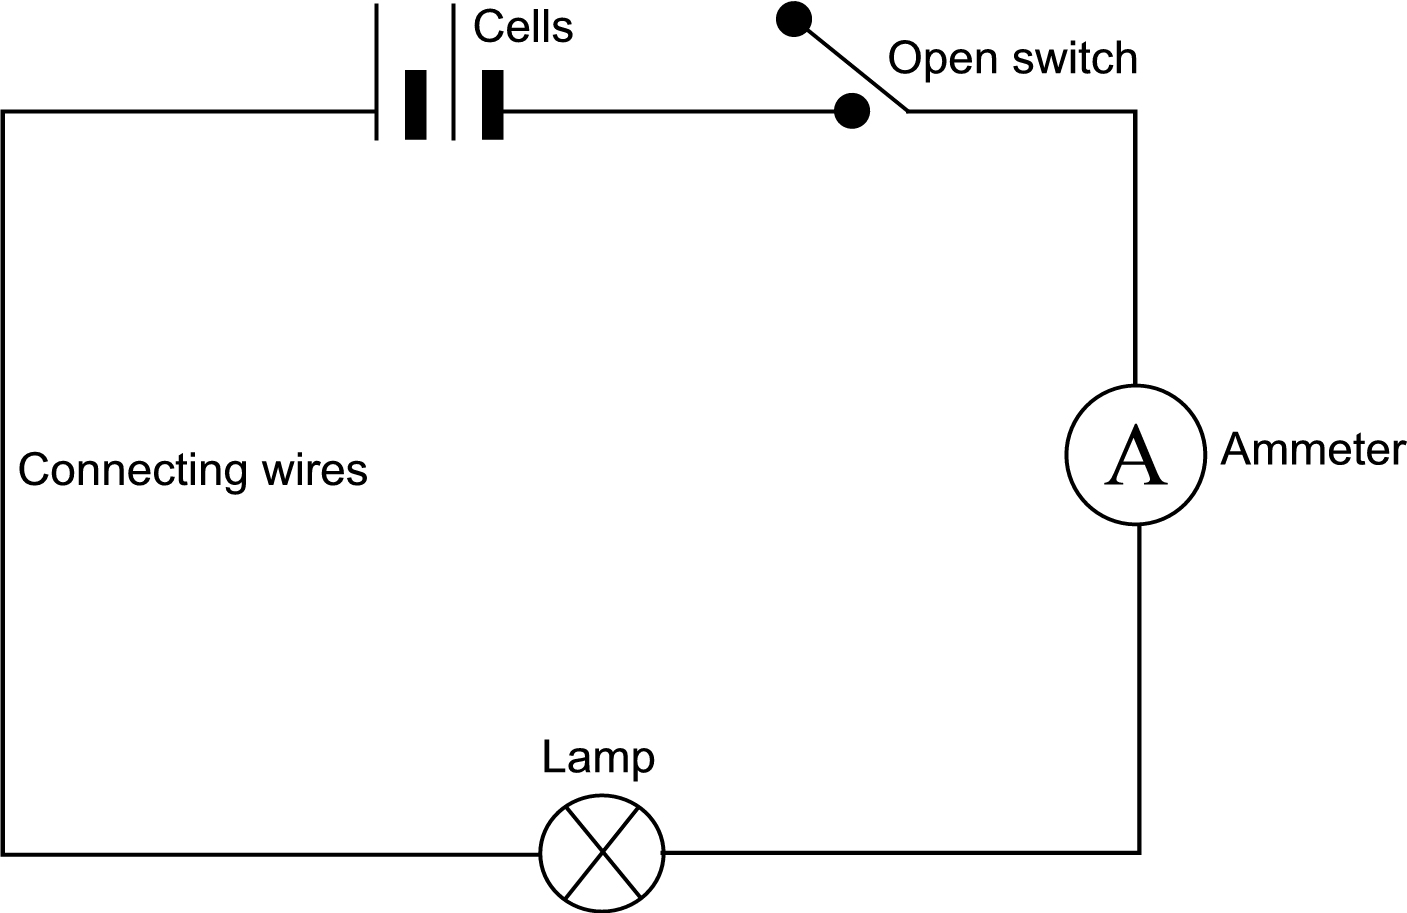 electric circuits rh archive cnx org simple electric circuit diagram symbols simple electric circuit diagram symbols